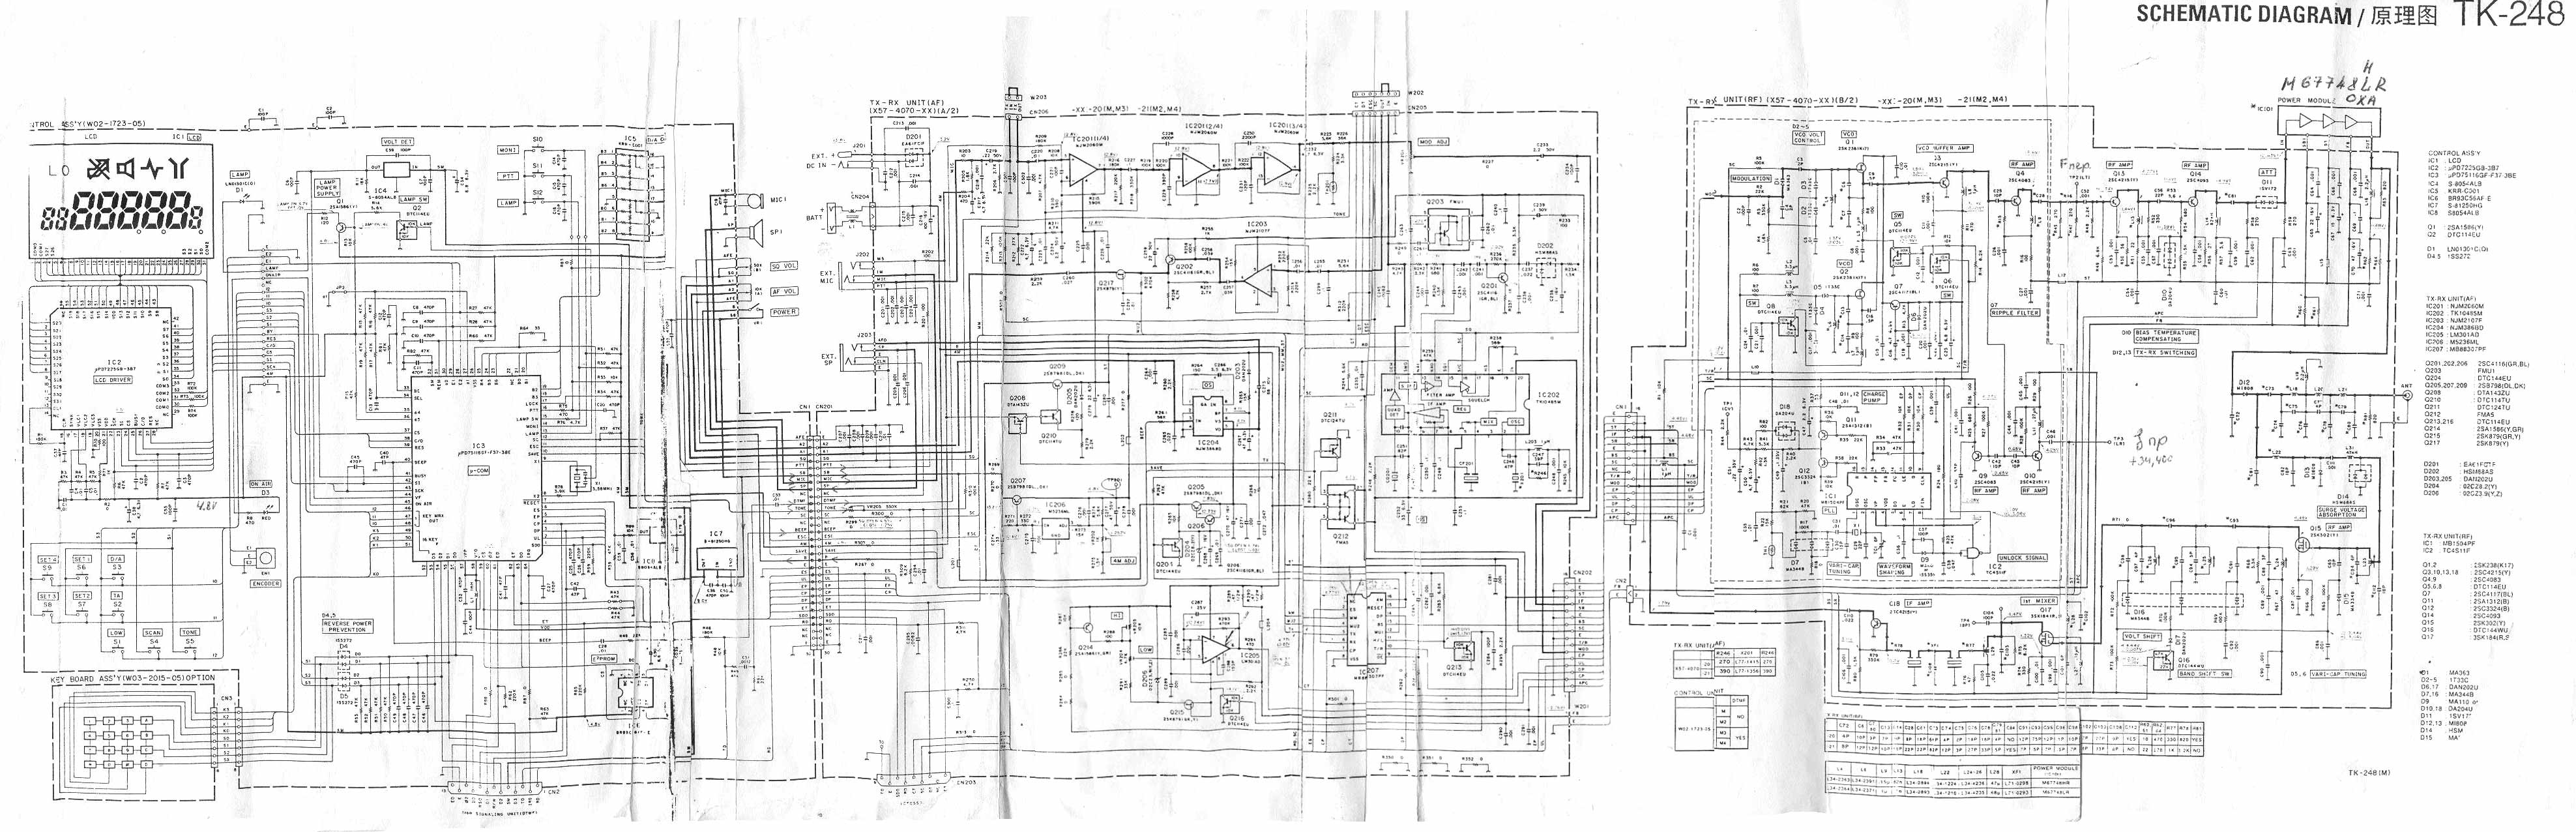 In Series Free Download Wiring Diagrams Pictures together with Hdtv Antenna Schematics also Servo Motor Schematic Diagram moreover P 0900c15280261dc6 as well 1756 Ia16 Wiring. on cadillac wiring diagrams schematics